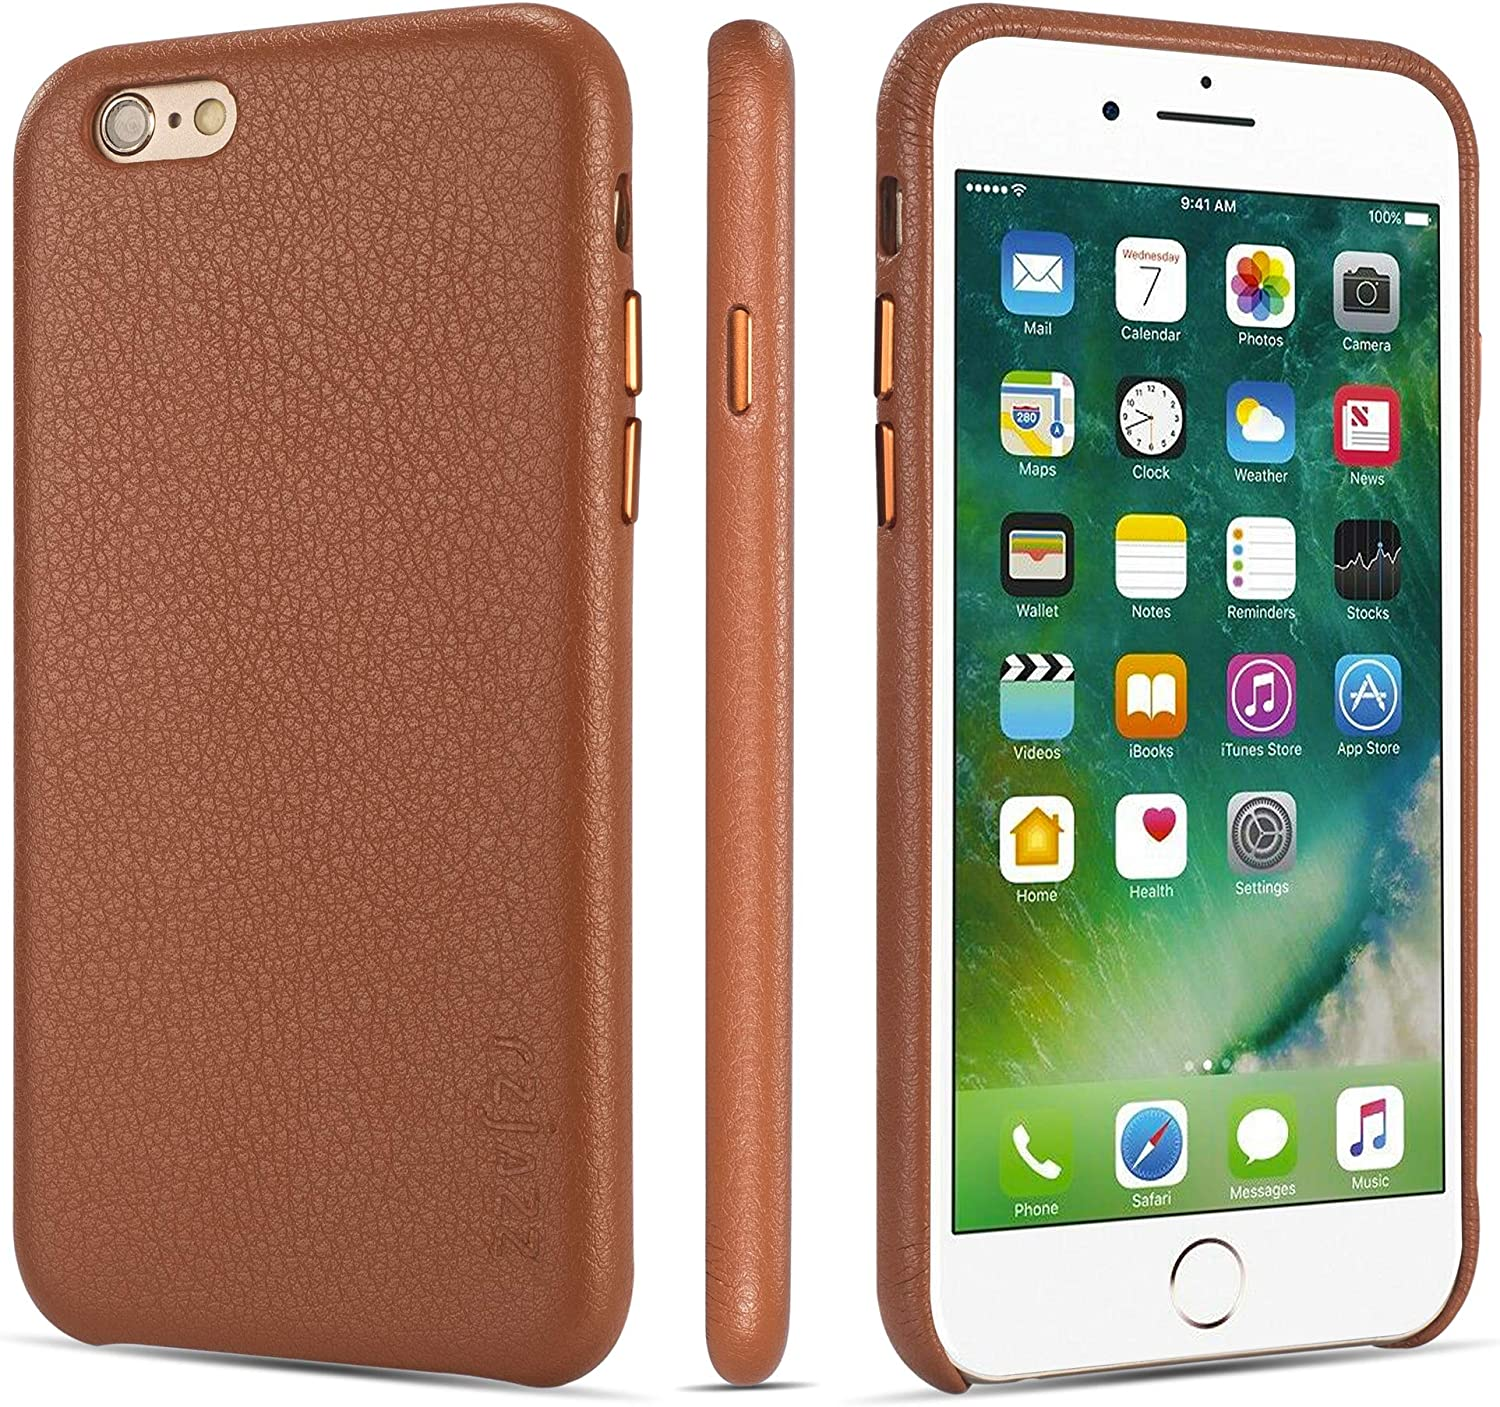 rejazz iPhone 6 Case iPhone 6s Case Anti-Scratch iPhone 6 Cover iPhone 6s Cover Genuine Leather Apple iPhone Cases for iPhone 6/6s (4.7 Inch)(Brown)